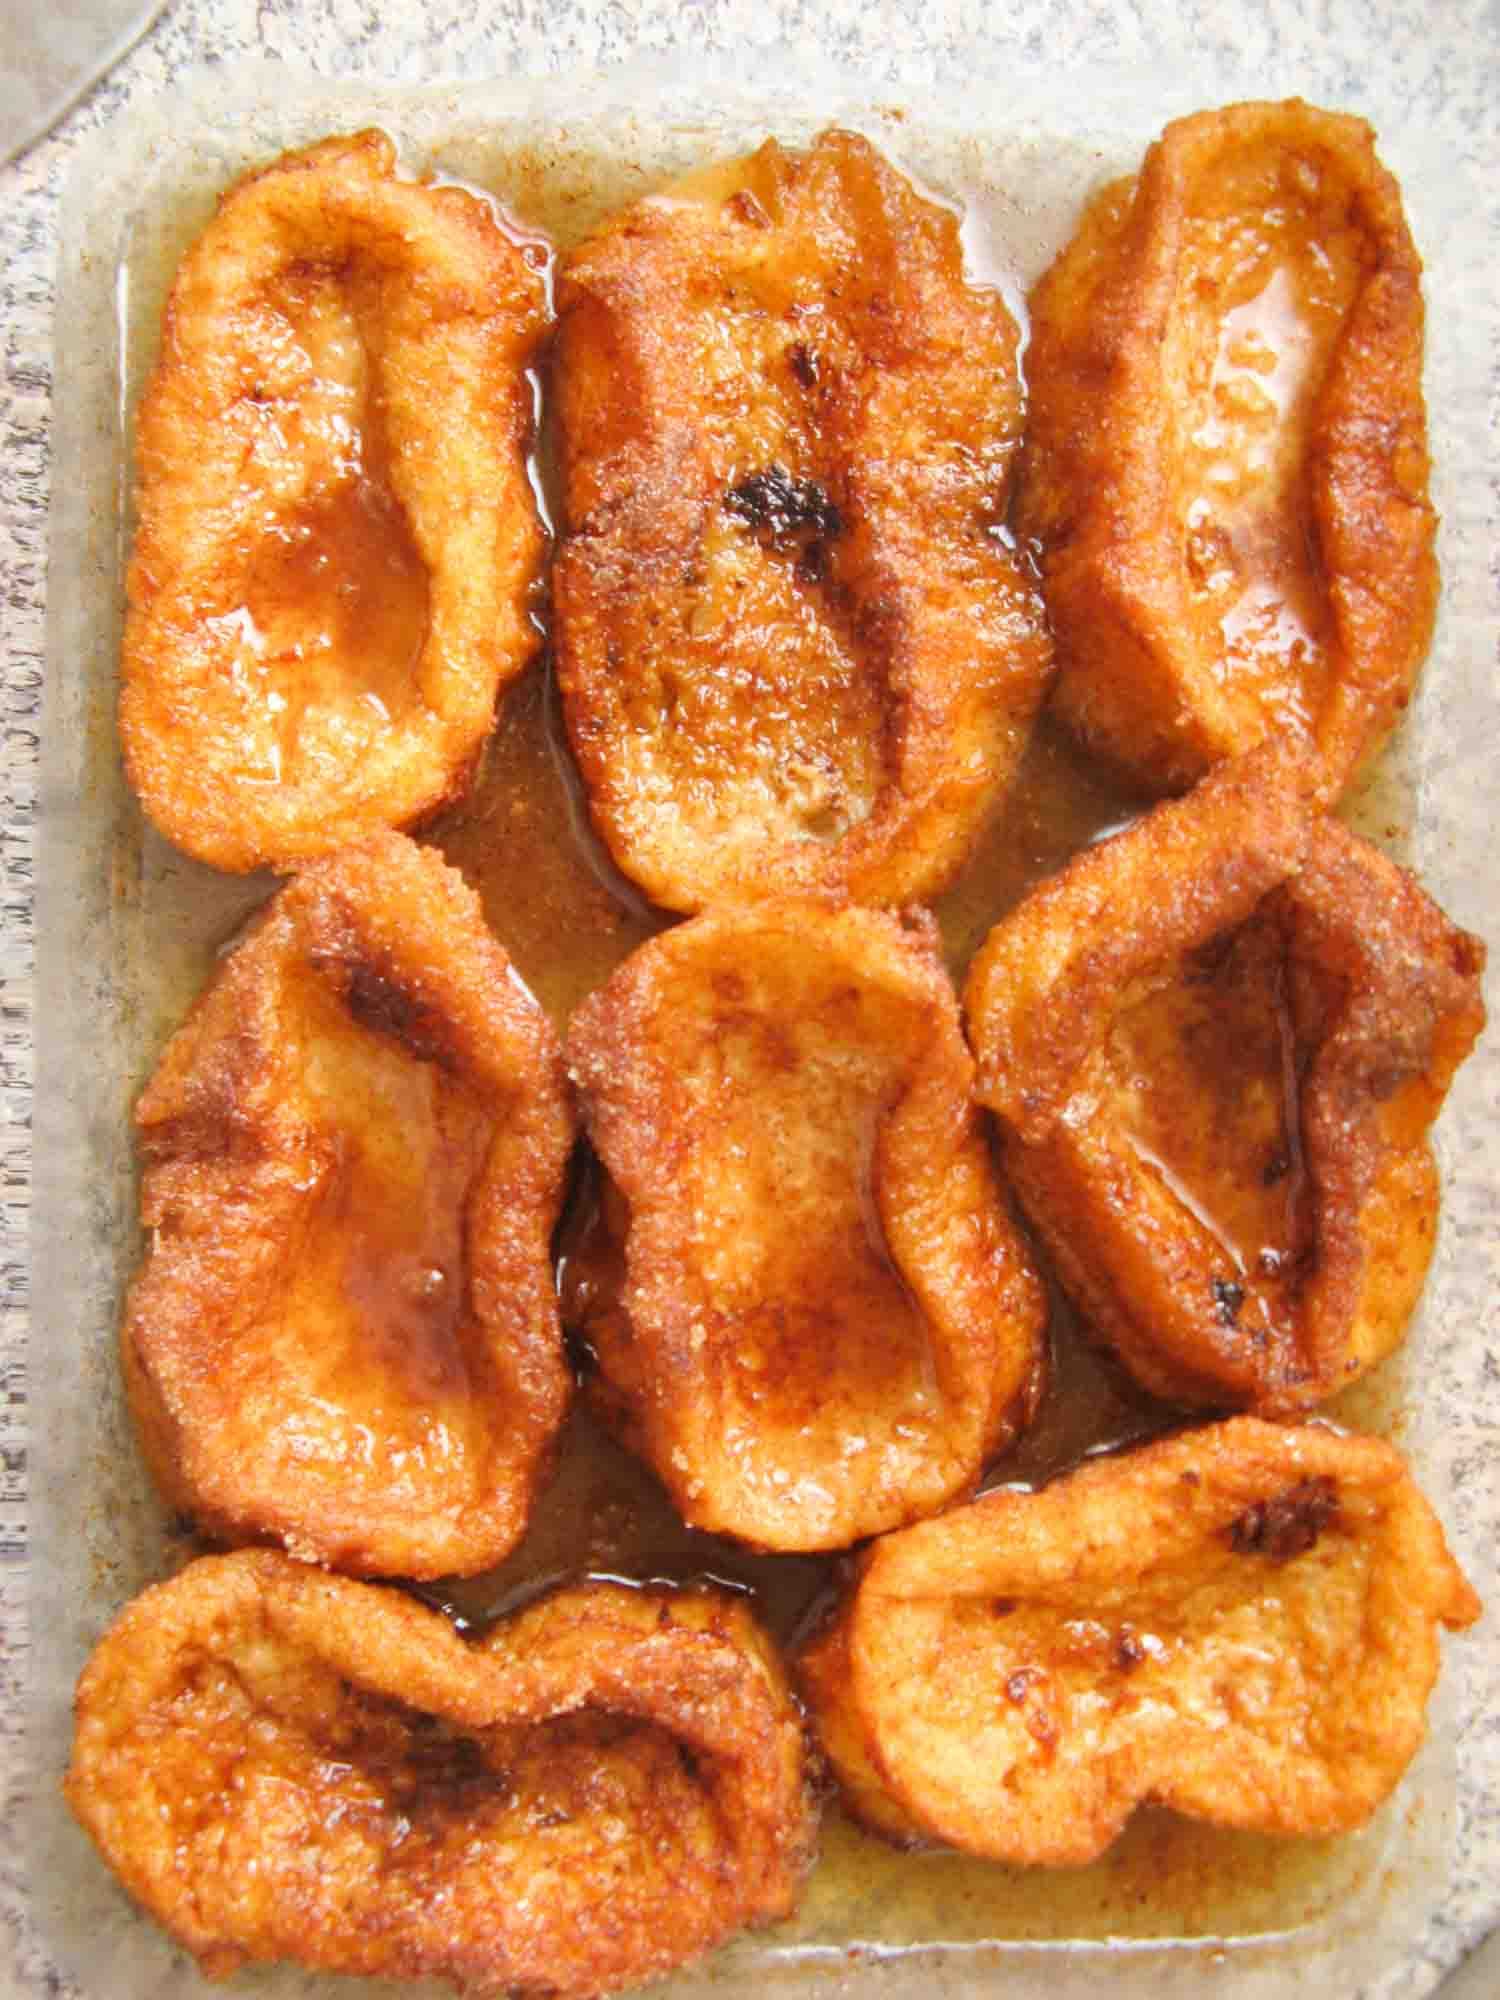 Torrejas, a Honduran dessert that are lady fingers coated in syrup, here eight on a plate